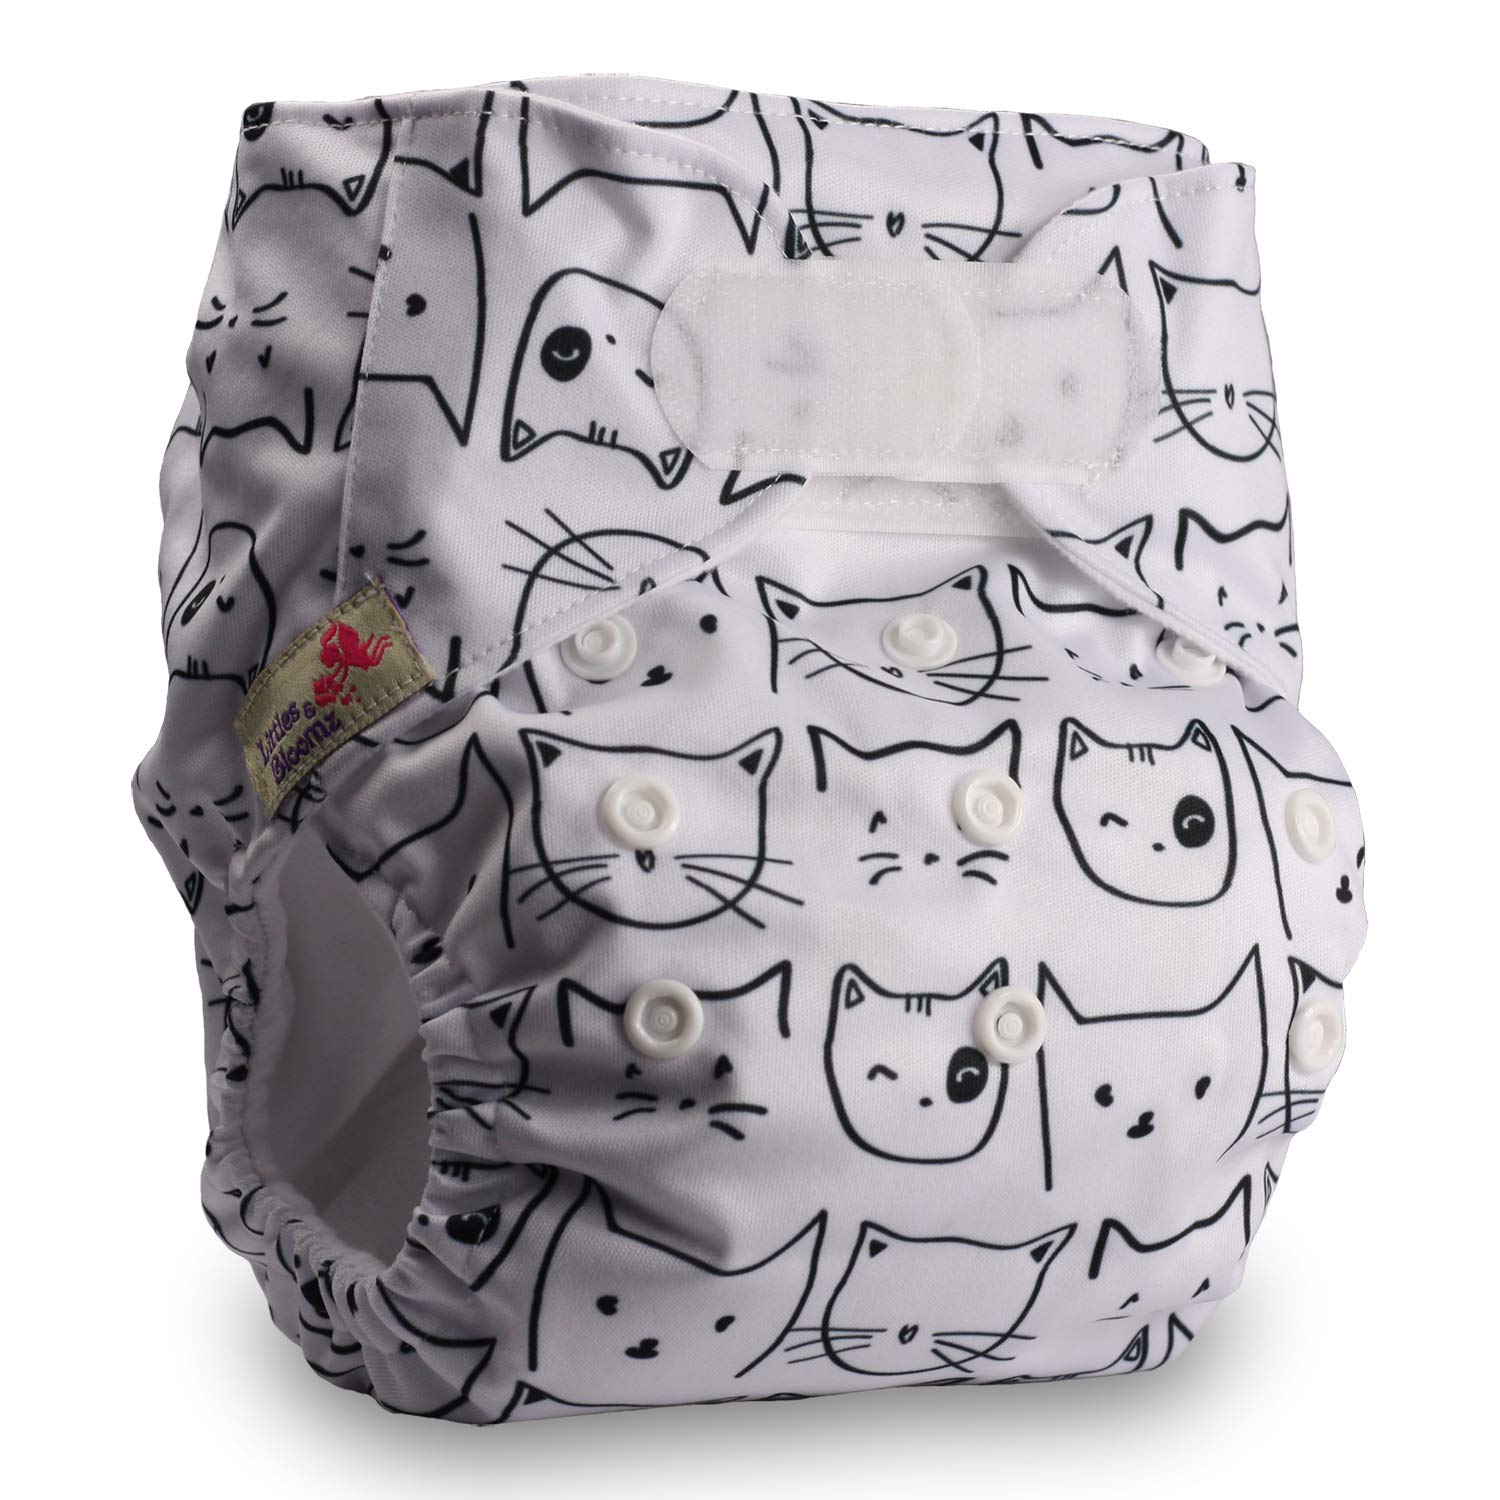 Fastener: Hook-Loop Pattern 61 Reusable Pocket Cloth Nappy Set of 1 Littles /& Bloomz with 1 Bamboo Charcoal Insert